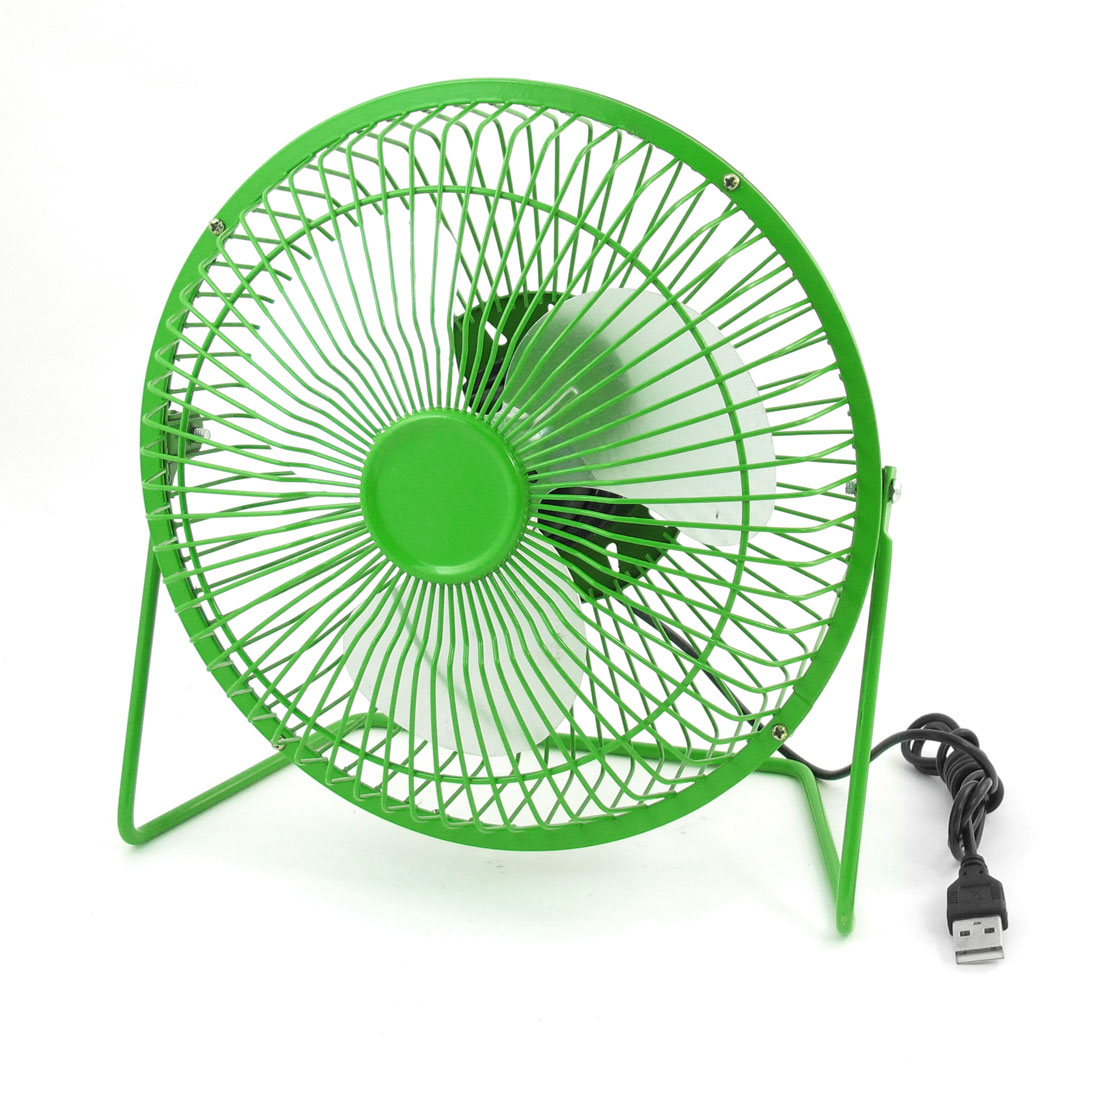 Adjustable Angle USB Connector Cooler Cooling Desk Mini Fan Green